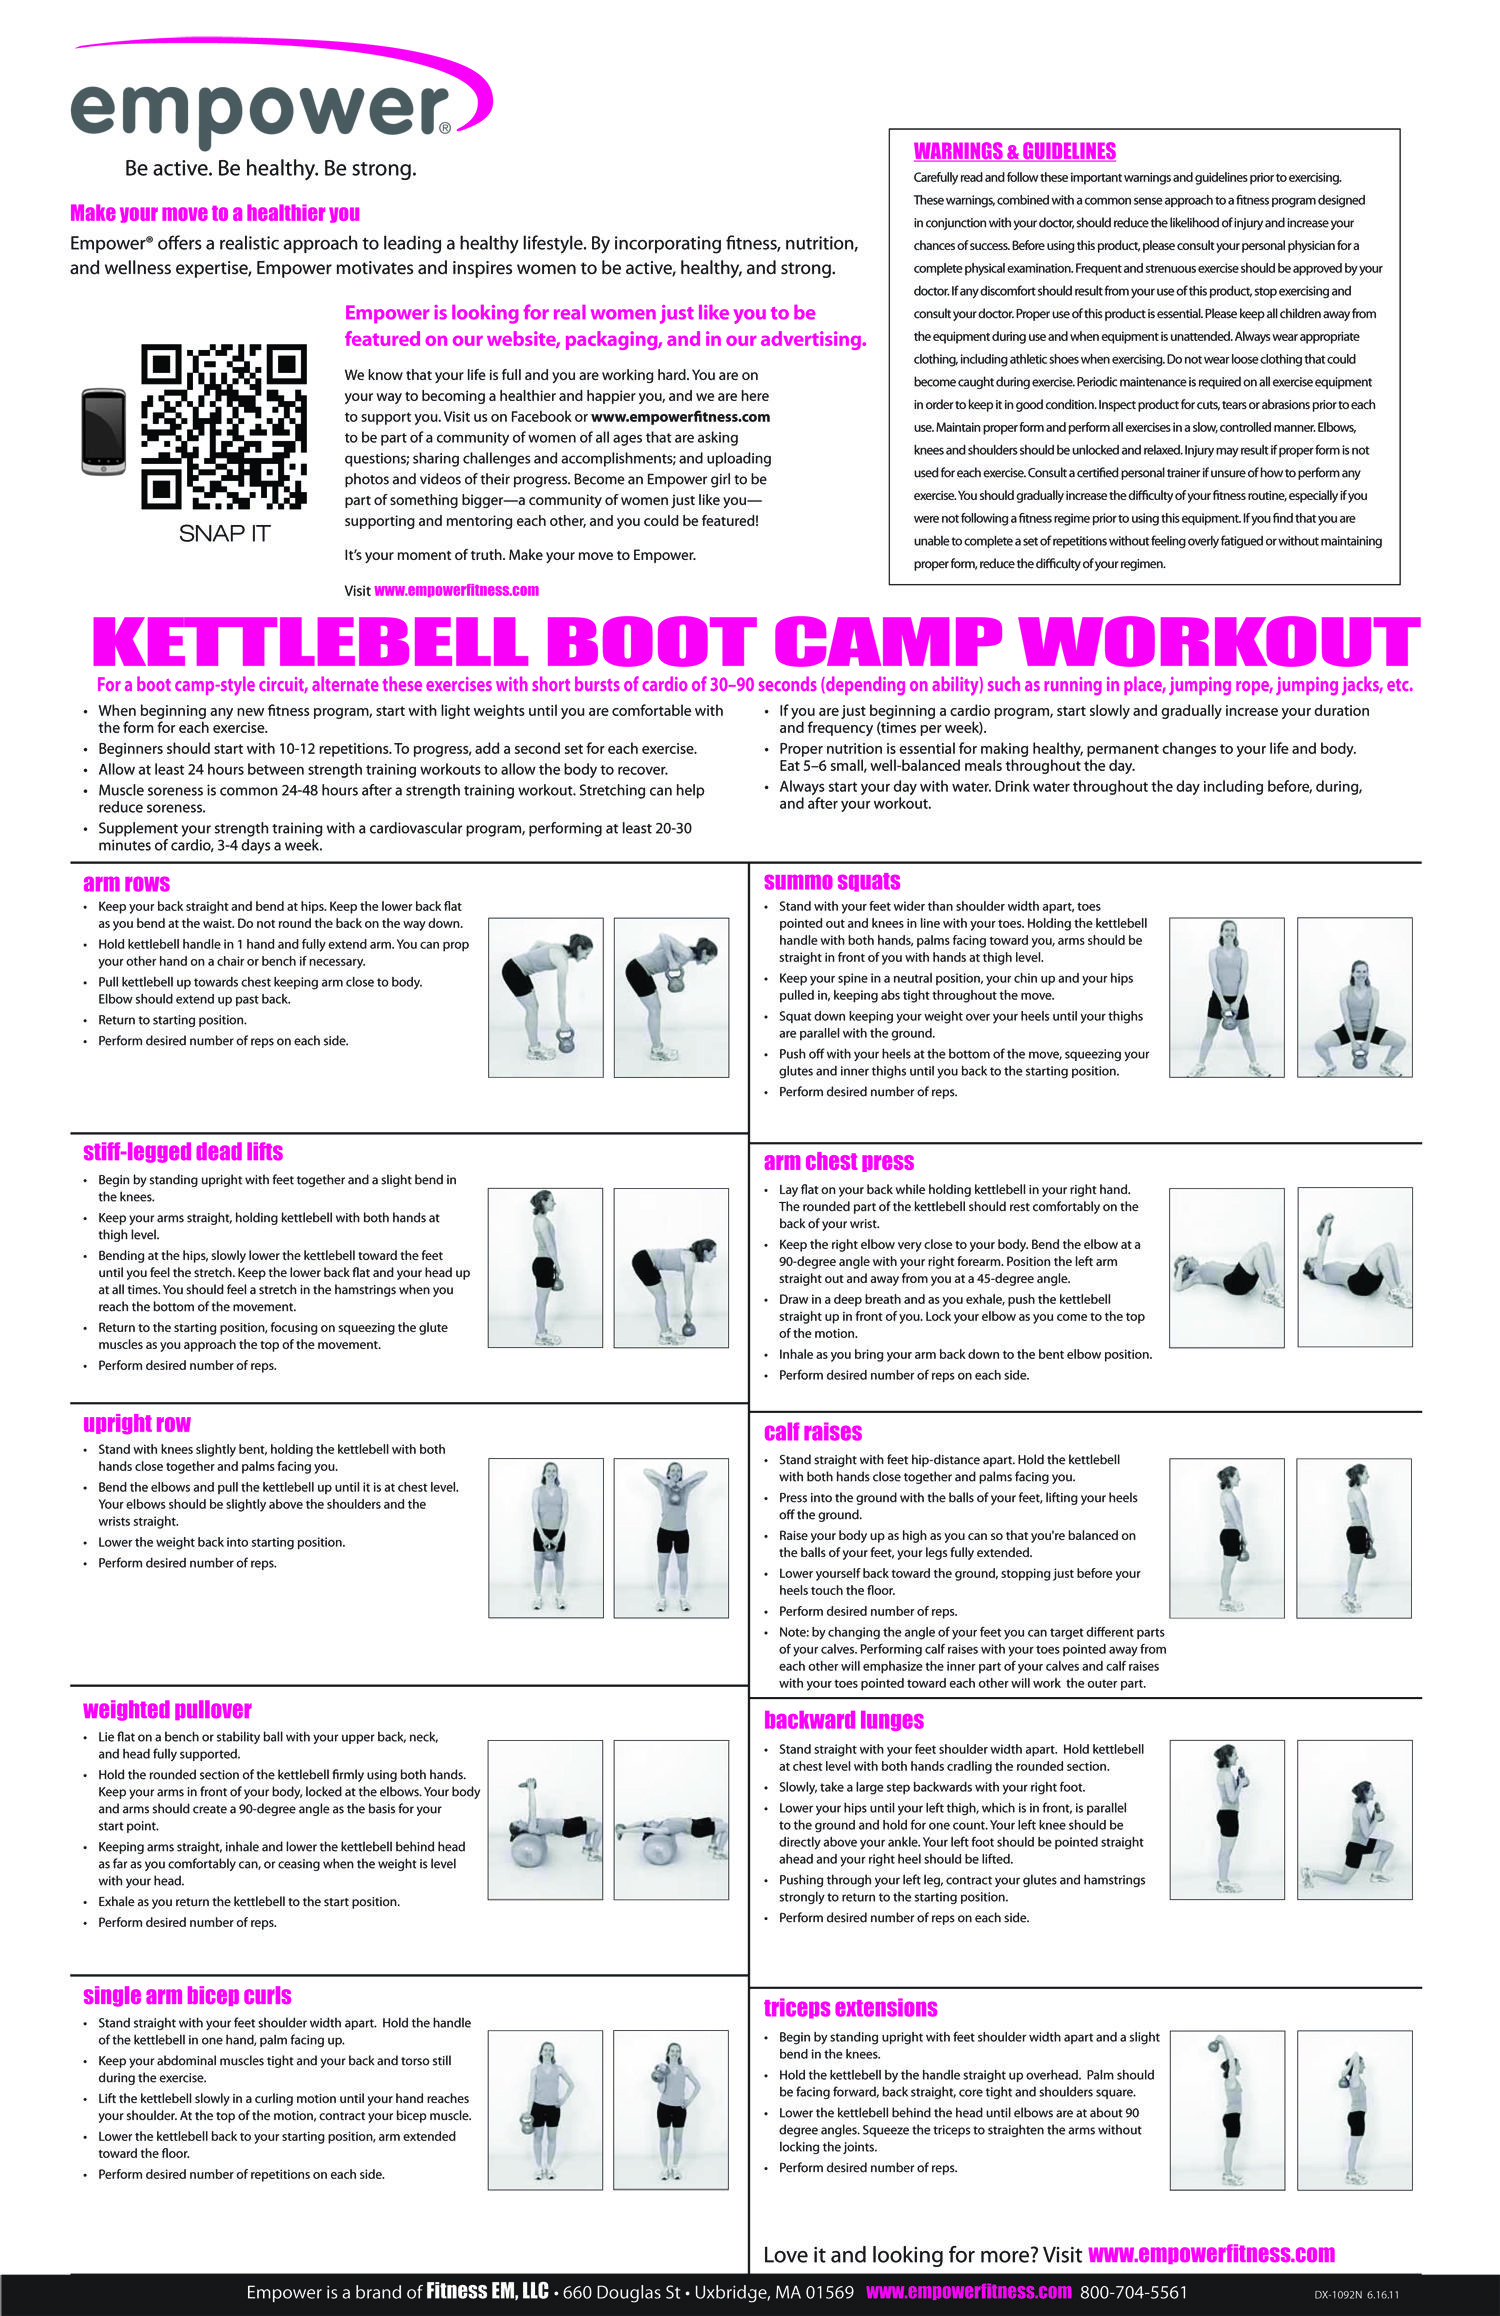 Empower Kettlebell Boot Camp Workout | How it Works | Gym ...